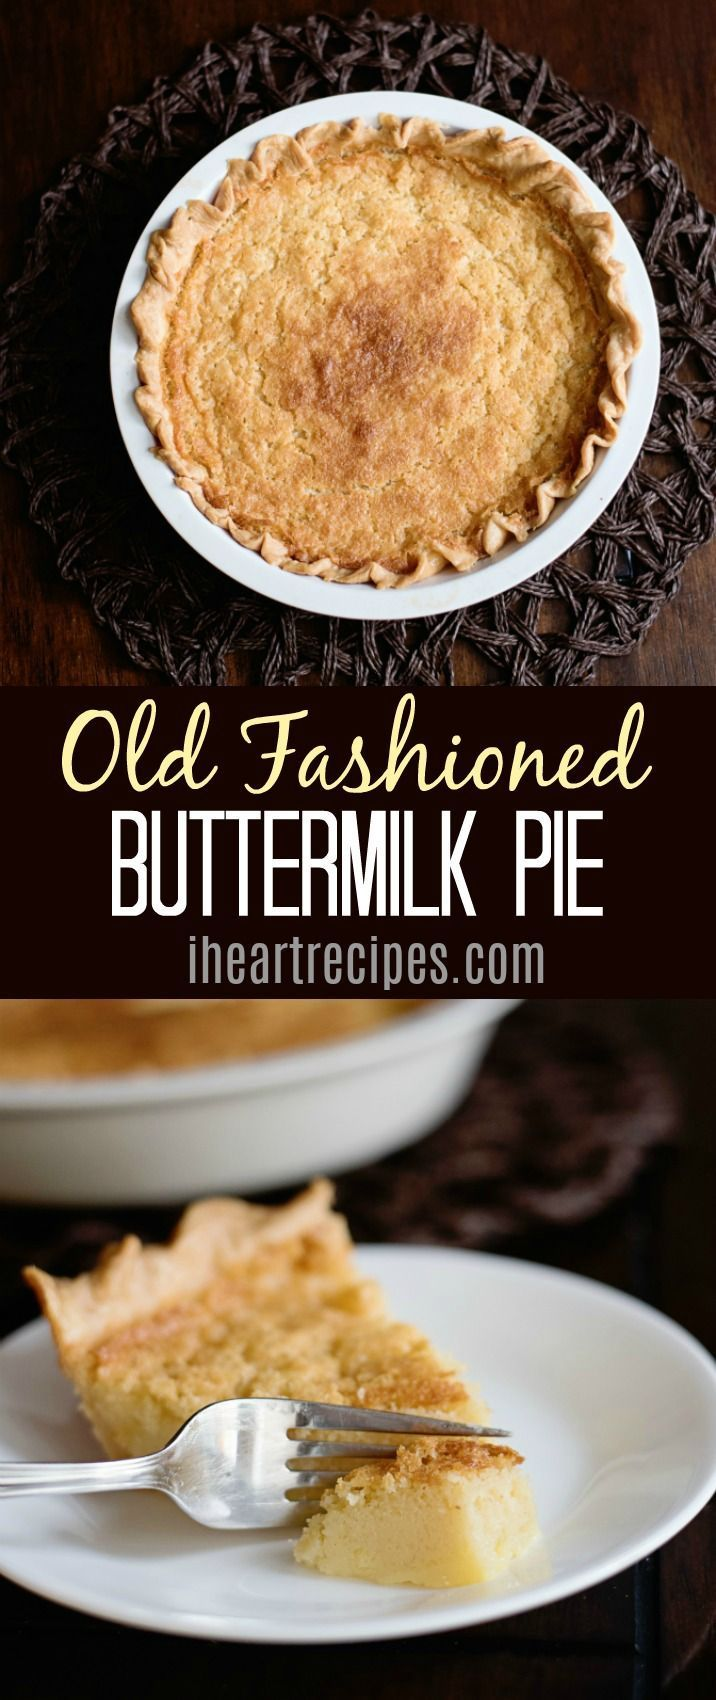 Old Fashioned Buttermilk Pie Recipe Buttermilk Pie Recipe Buttermilk Pie Holiday Pies Recipes